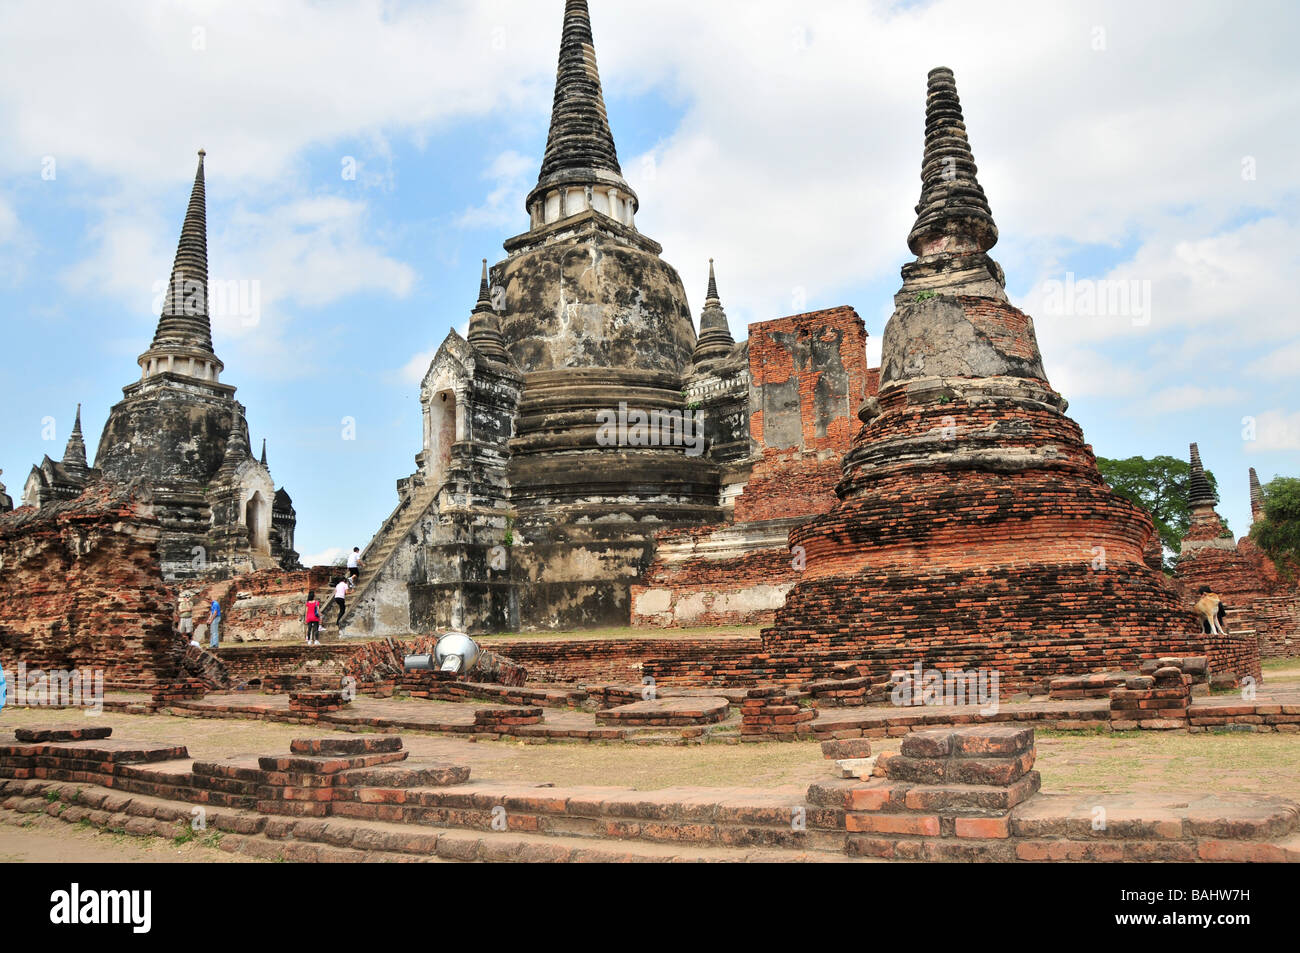 ruins of ancient siam capital city of ayutthaya near. Black Bedroom Furniture Sets. Home Design Ideas